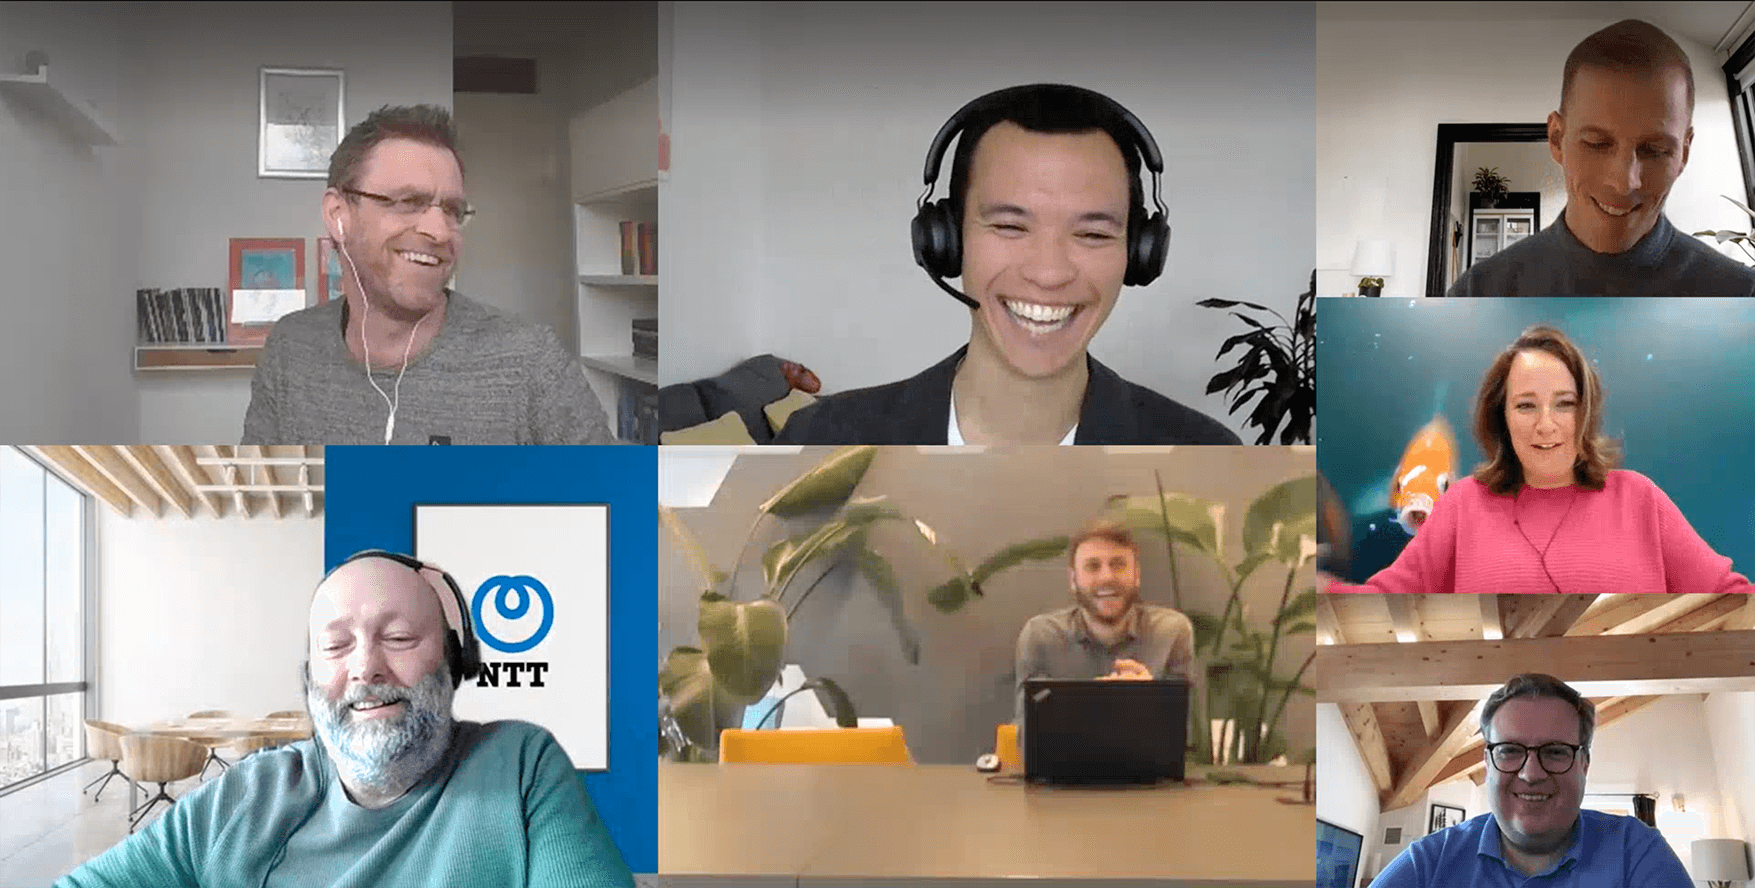 Participants of Mapiq Expert talks, smiling during the virtual session. Enhancing the office for hybrid work.